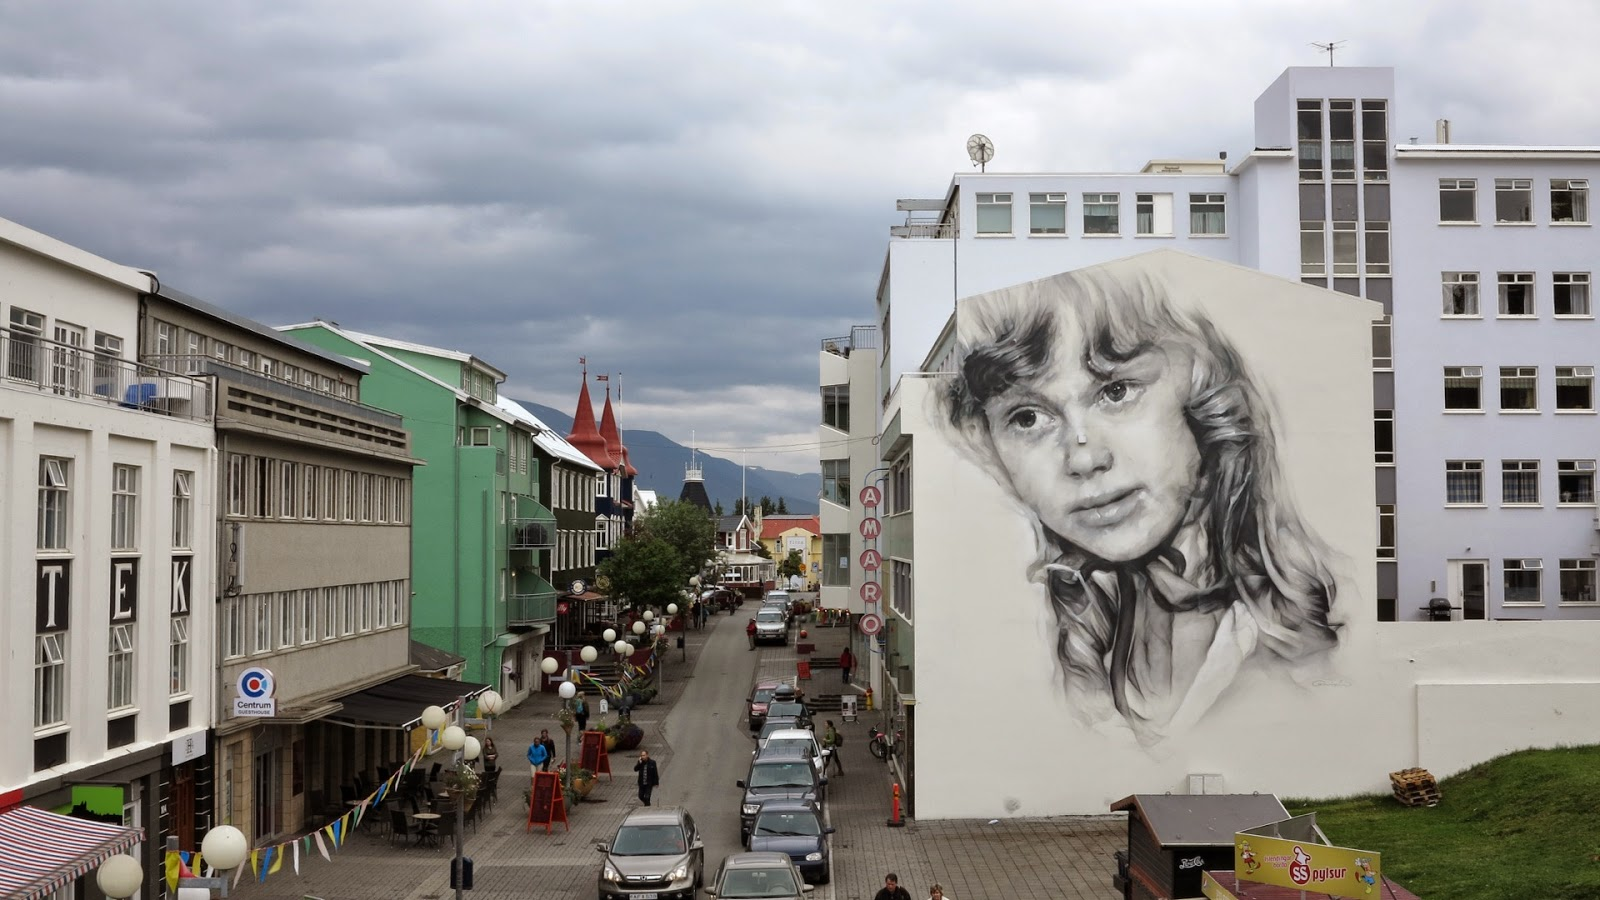 After a few days of work, Guido Van Helten just wrapped up this new piece for the Akureyrarvaka culture festival 2014 on the streets of Akureyri in Iceland.